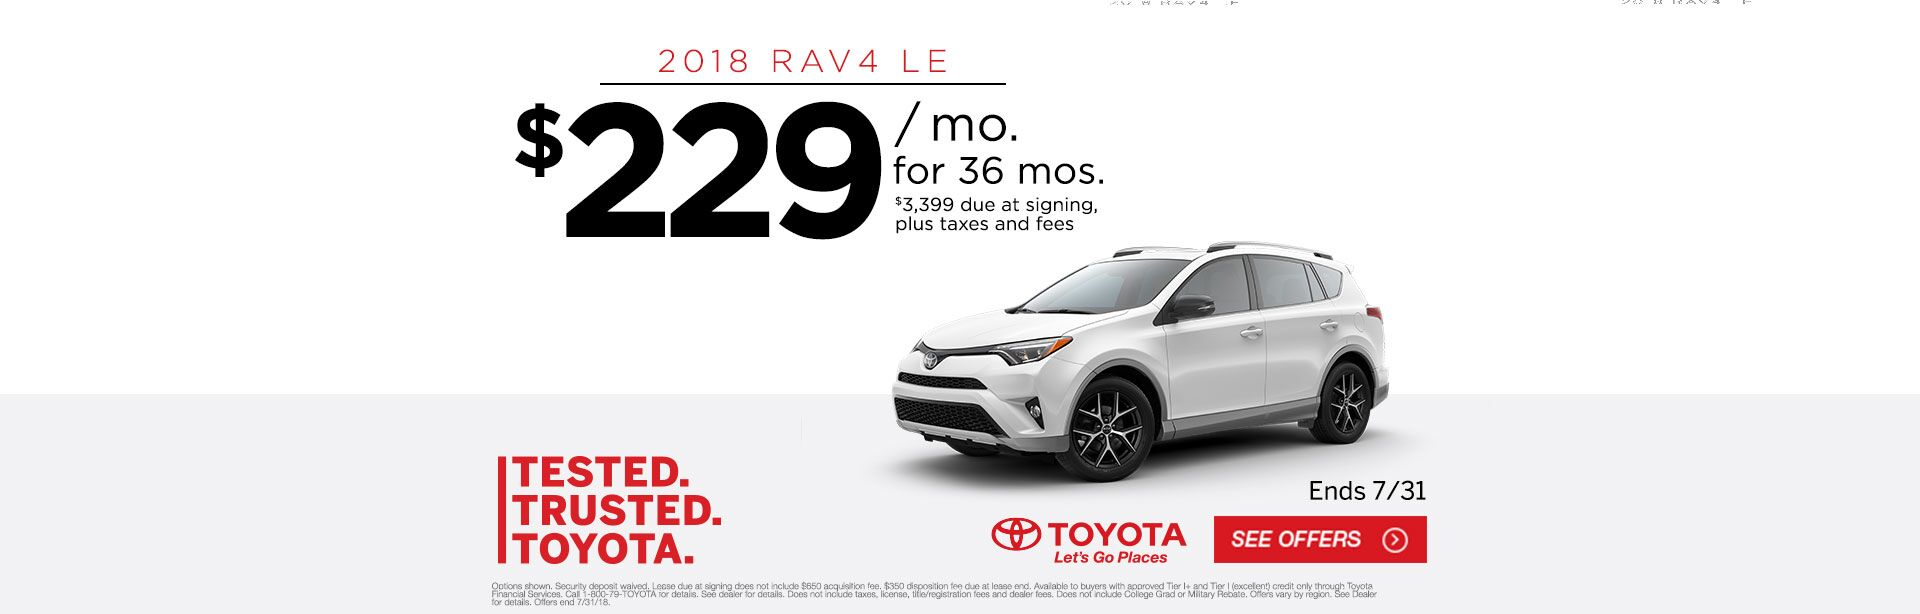 CHI - Toyota Tested Trusted RAV4 Lease